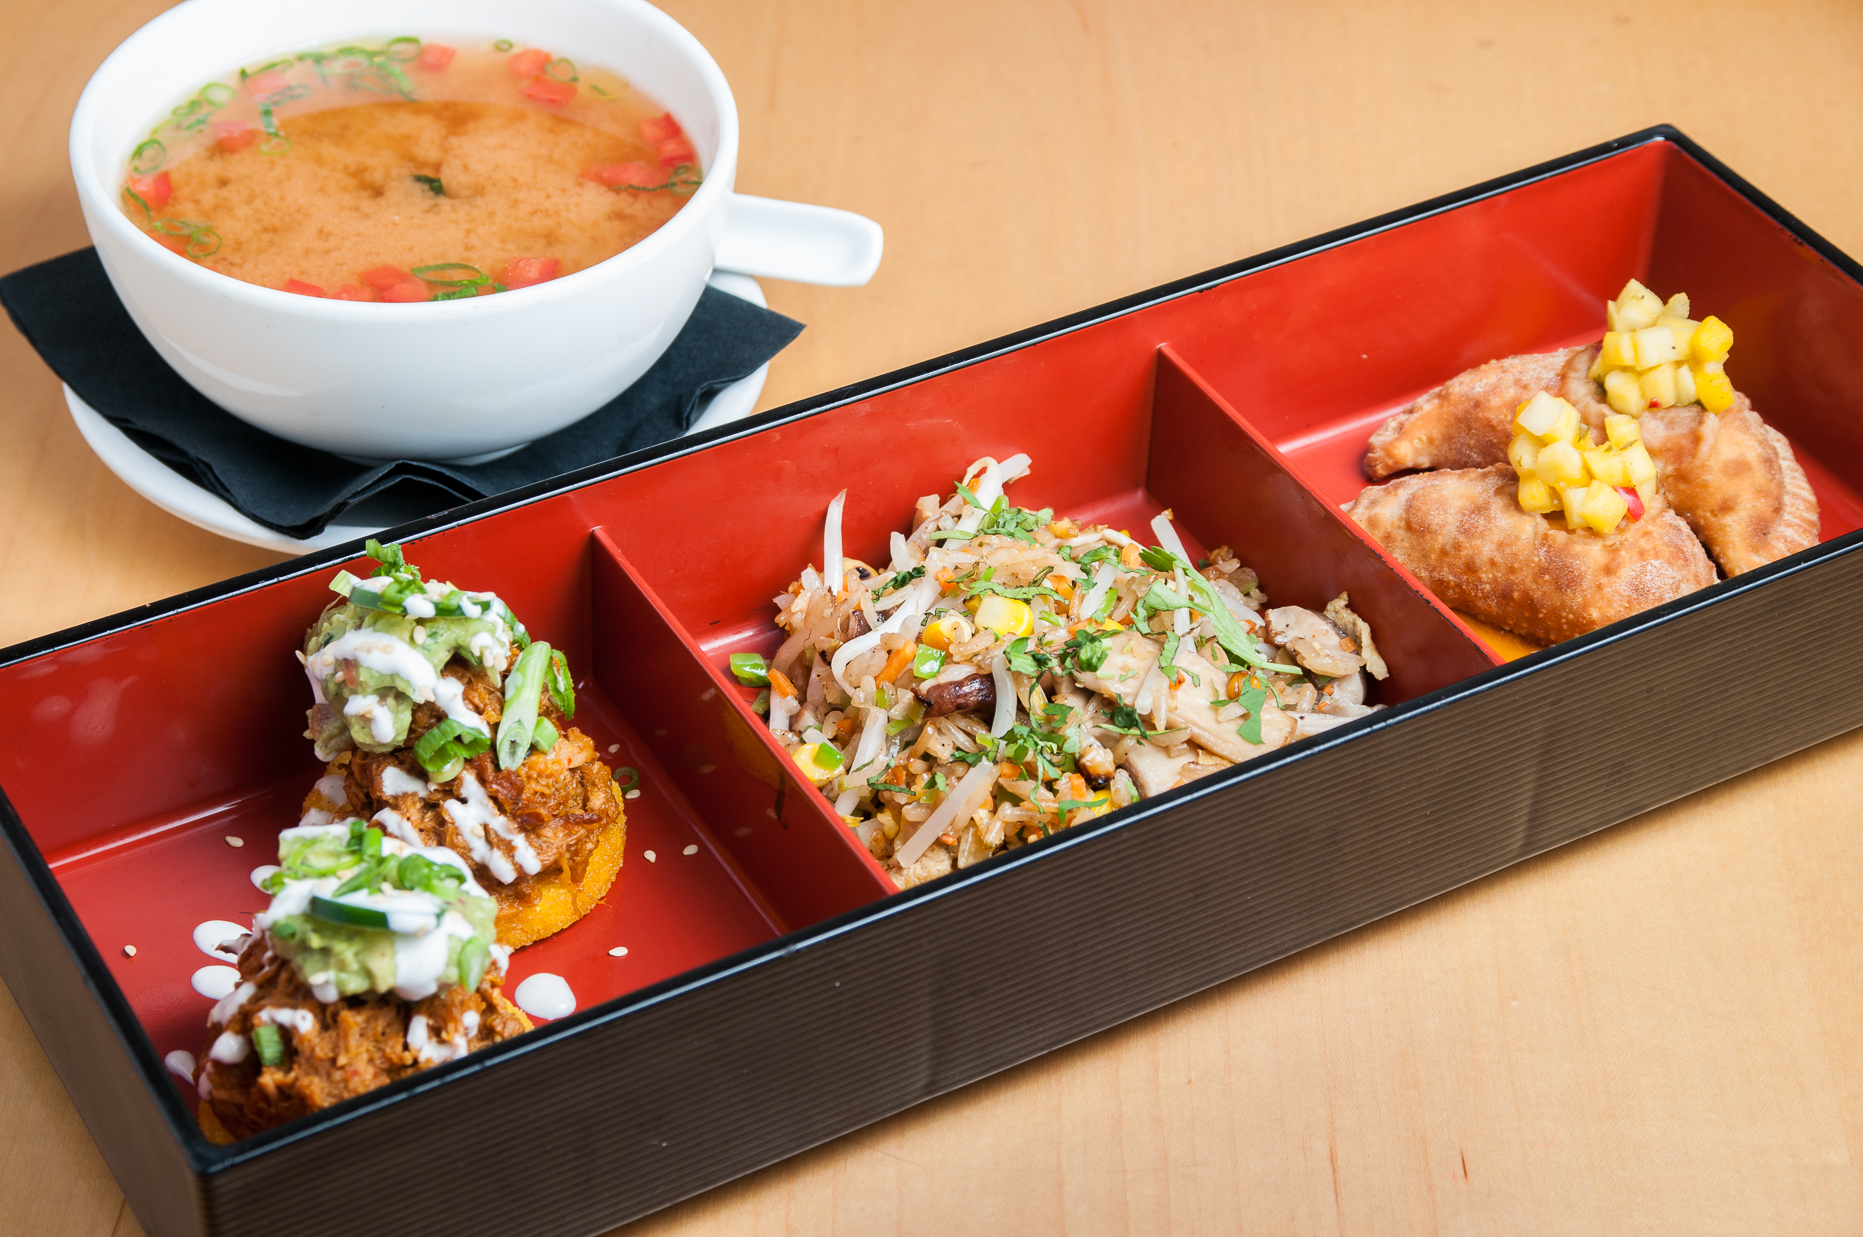 Buy four of Zengo's bento boxes this month and get the fifth free, including the dim sum bento box. (Photo: Zengo)